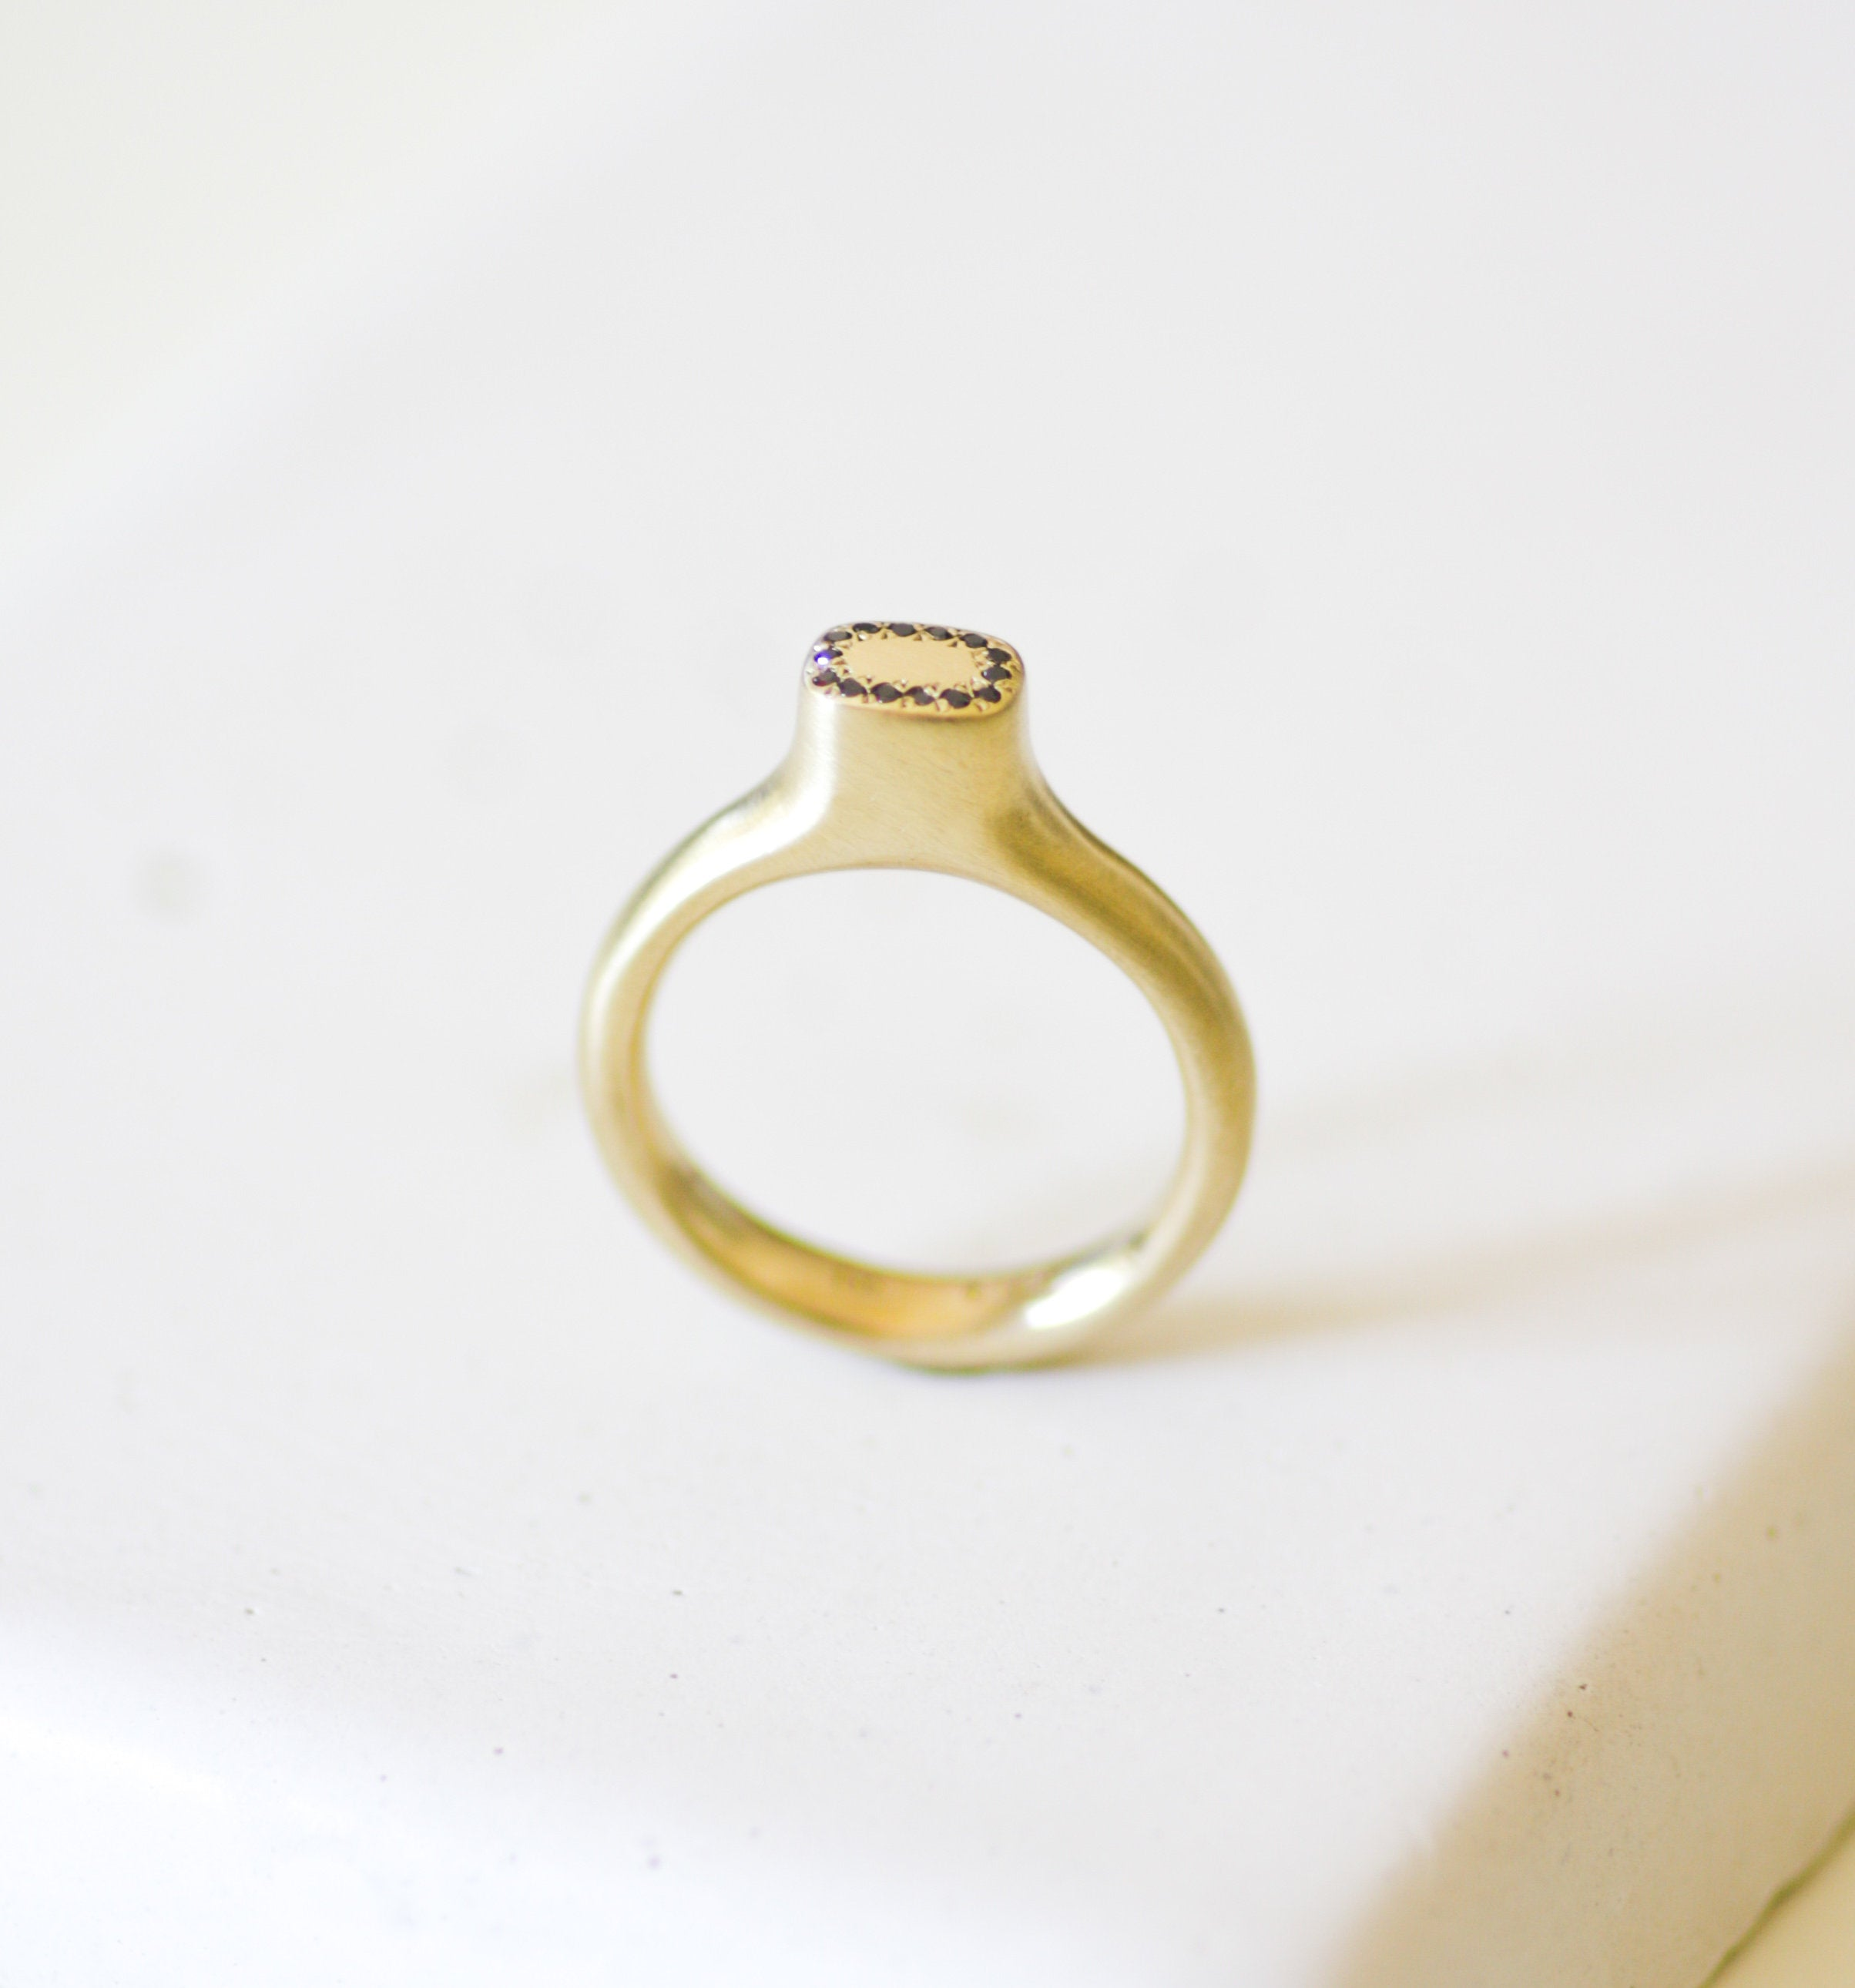 Dainty Signet 14K Gold Ring with Black Diamonds / Solid Gold Top Ring - hs